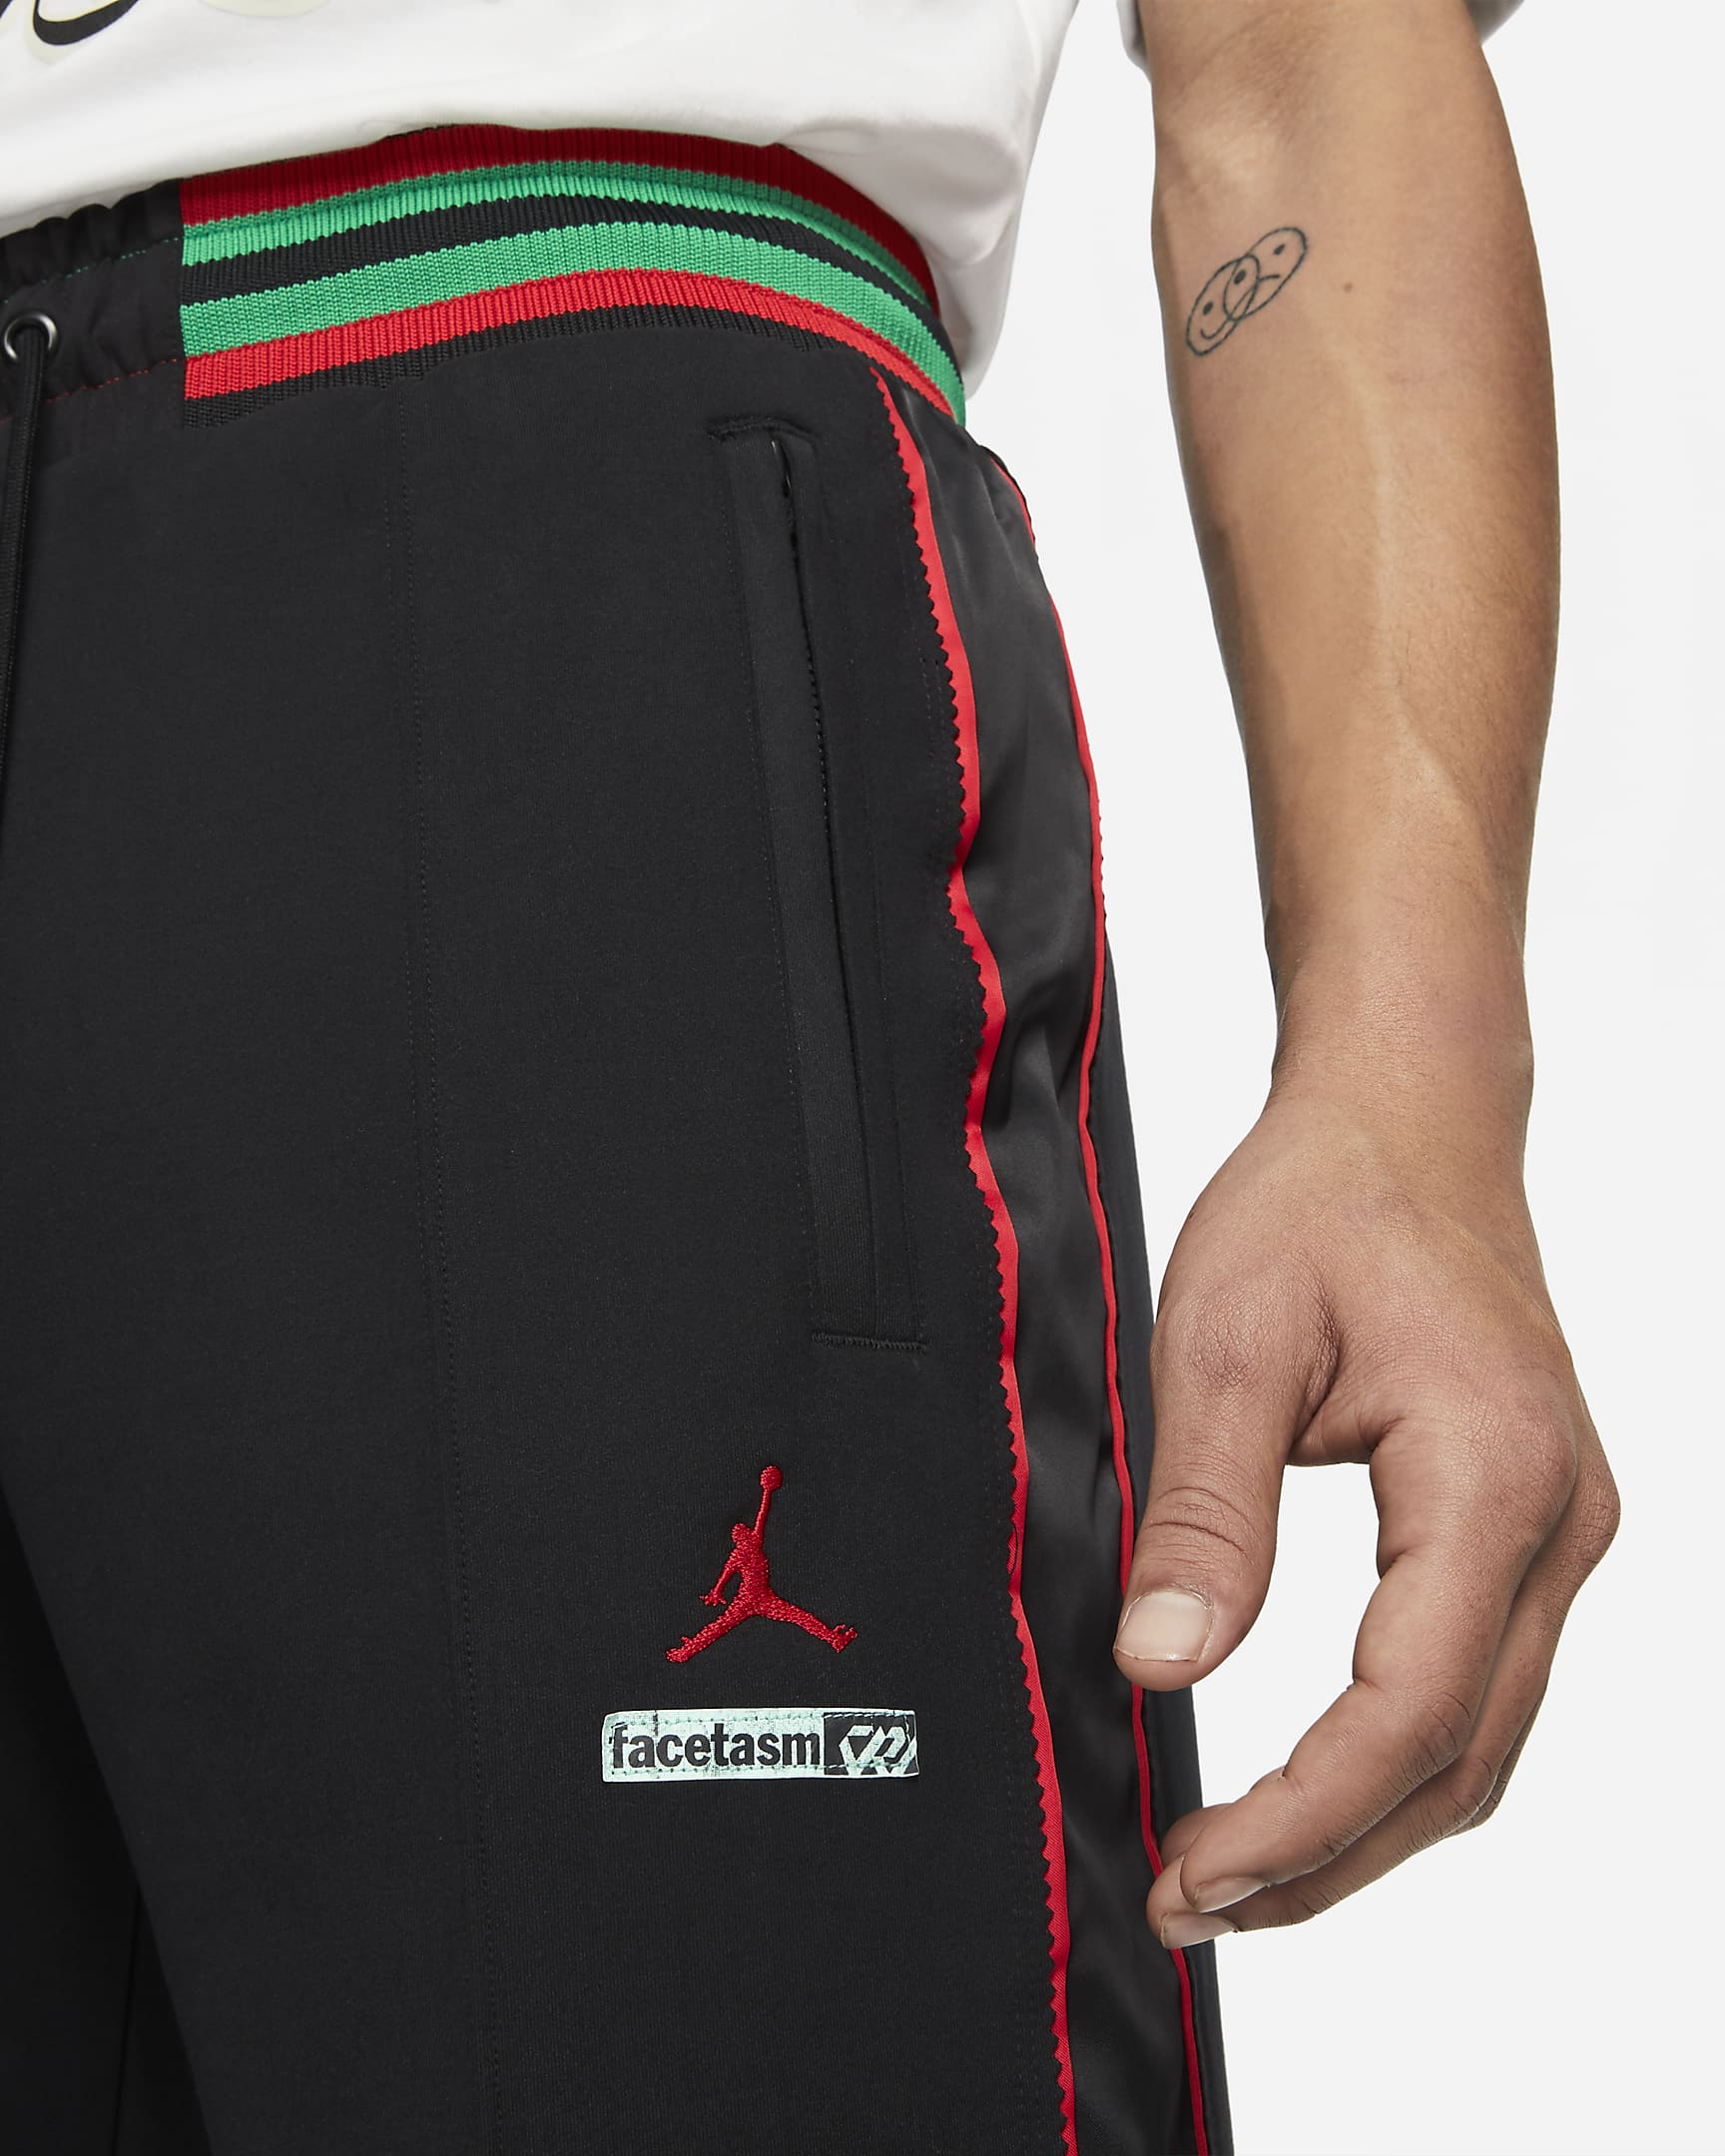 jordan-why-not-x-facetasm-mens-track-pants-lnL7tj-2